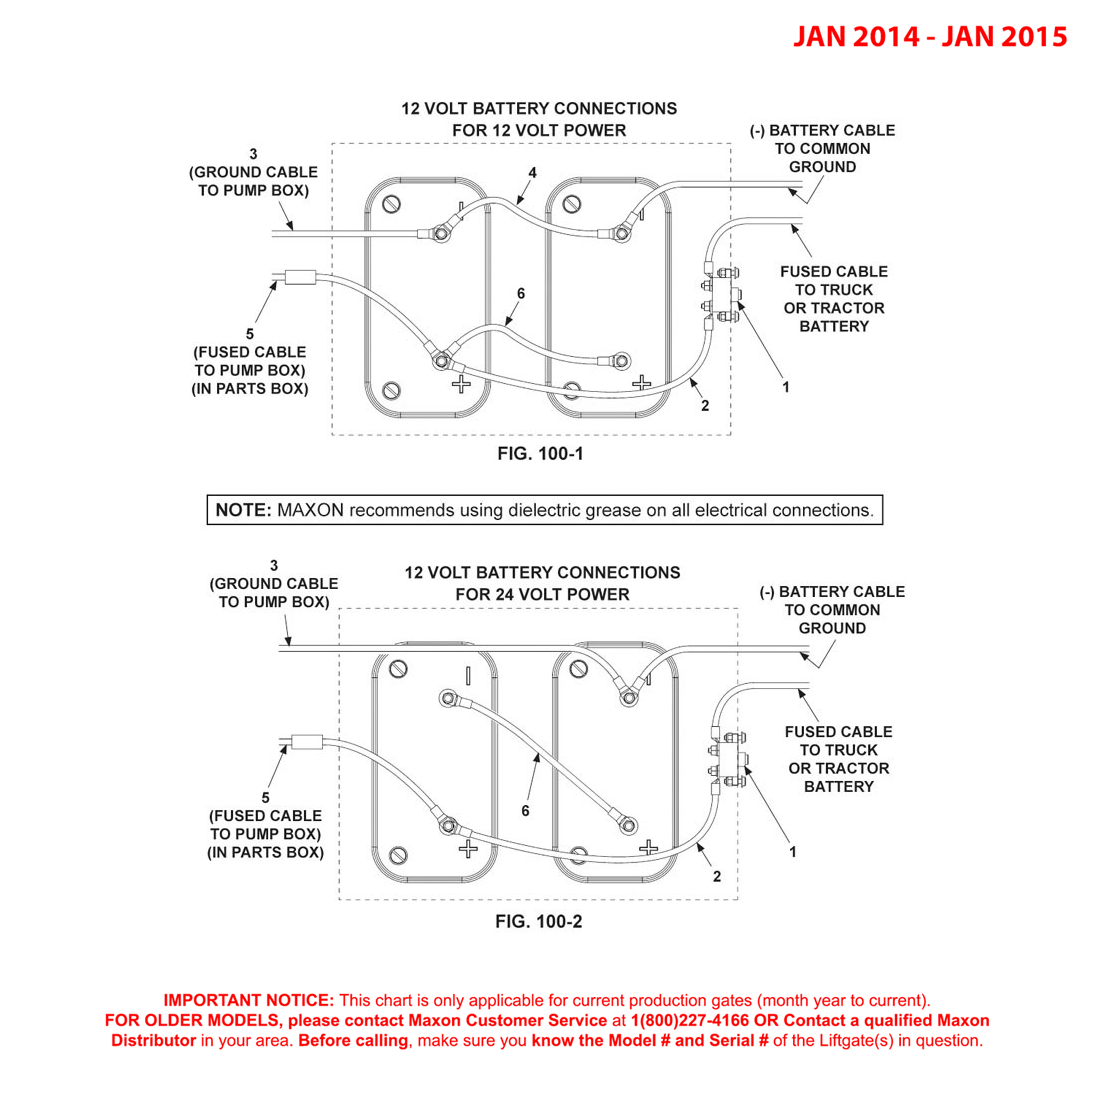 GPTWR (Jan 2014 - Jan 2015) Optional Battery Box Electrical Components Diagram